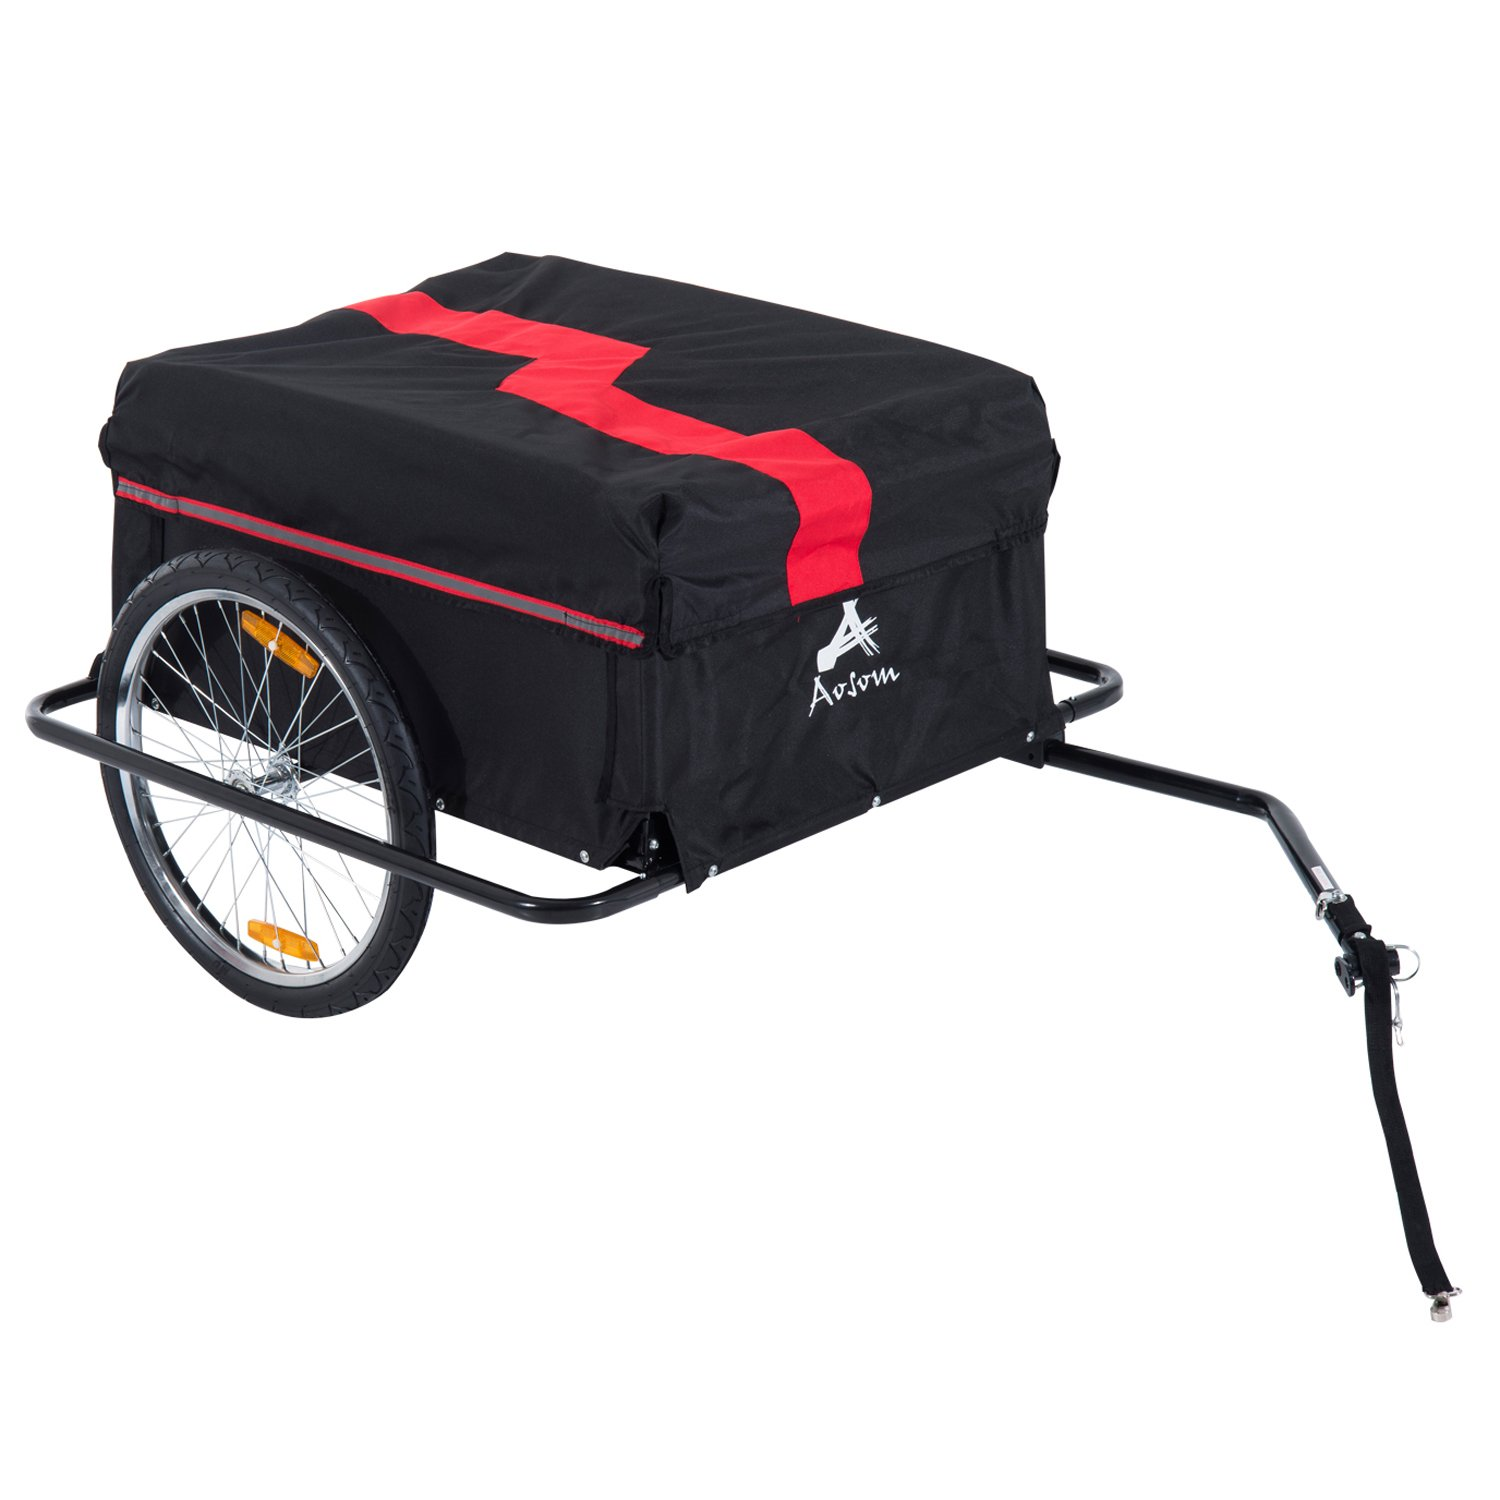 Associated product image for Aosom Bicycle Cargo Trailer Cart Carrier Garden Use w/Cover, Black/Red